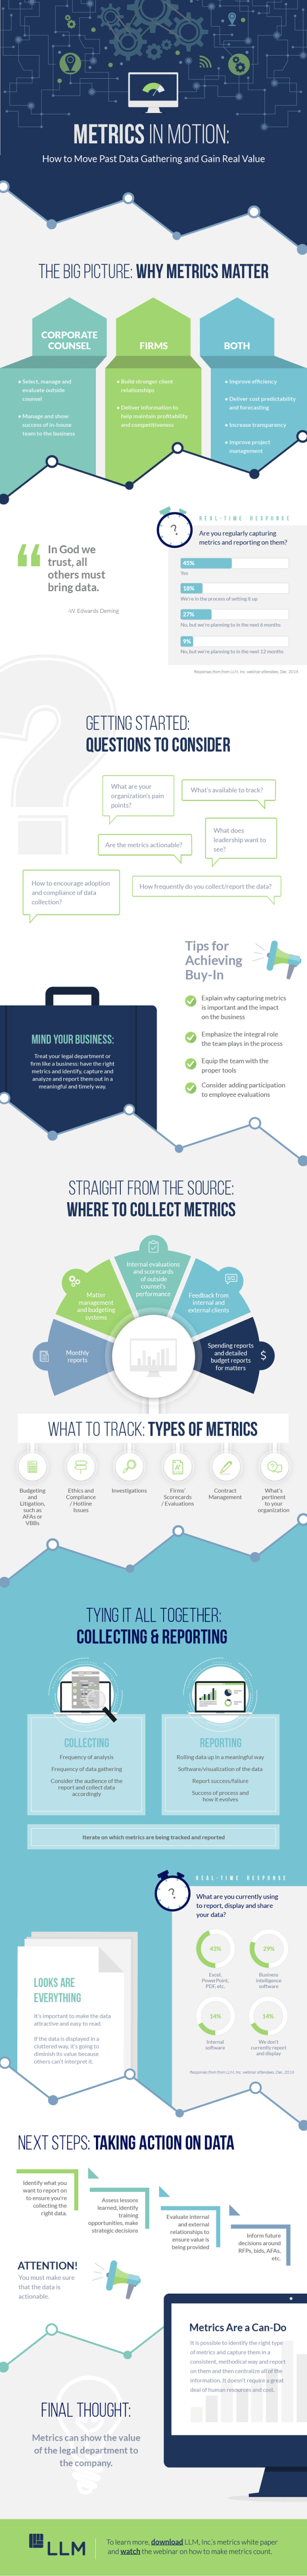 Metrics in Motion: How to Move Past Data Gathering and Gain Real Value